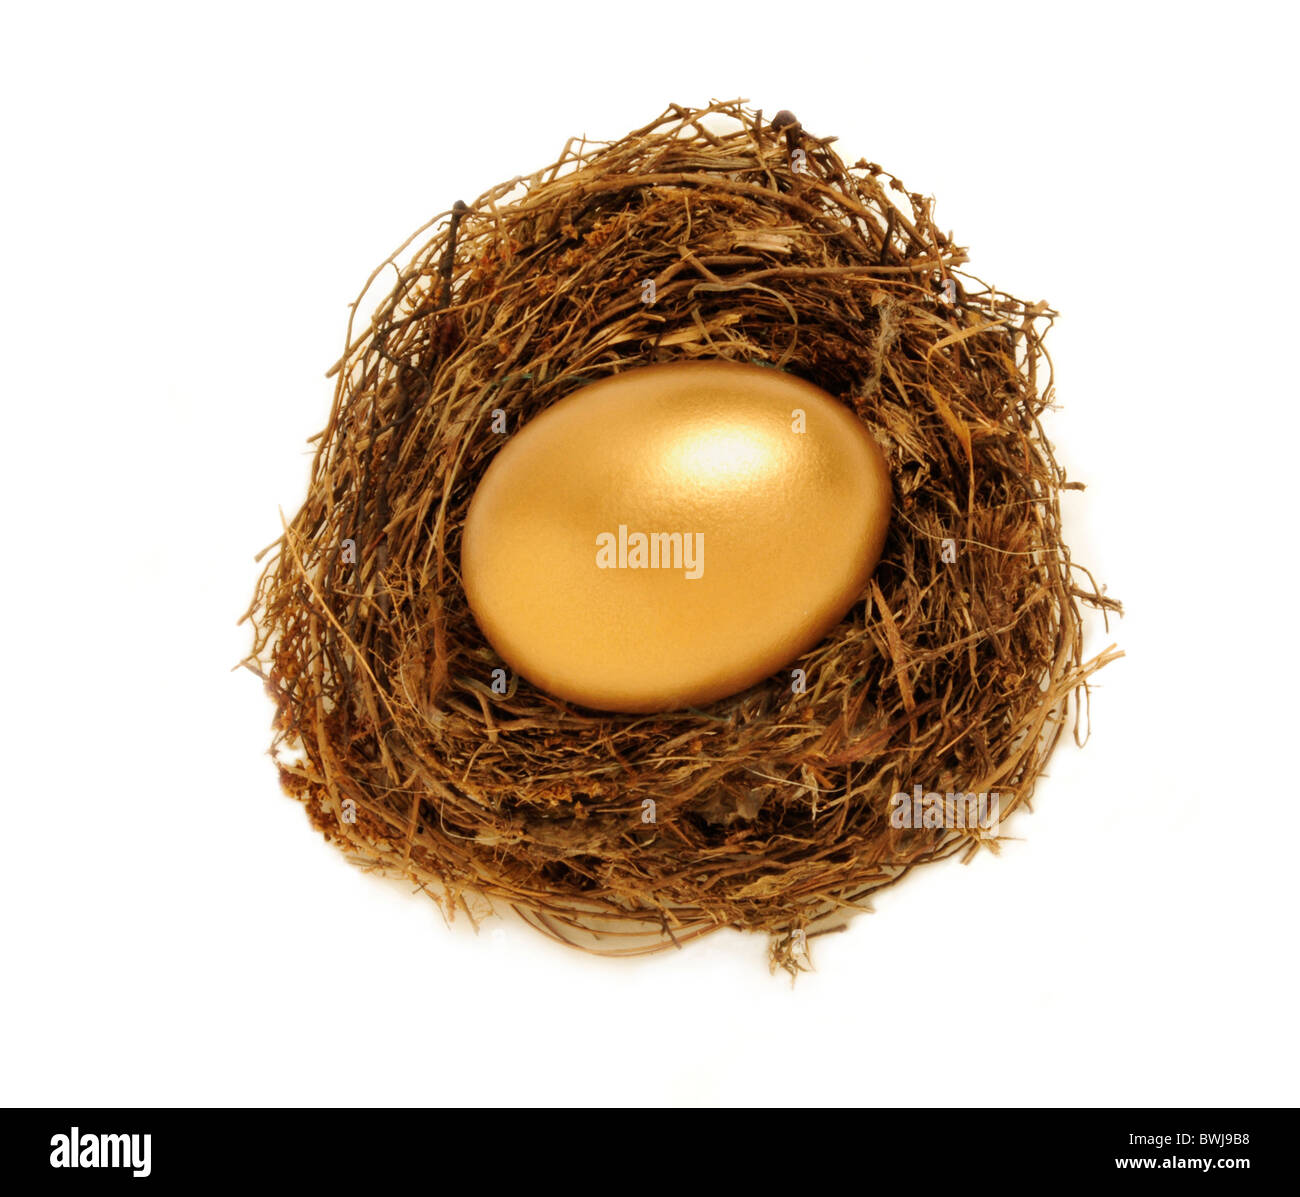 Golden egg in a nest representing retirement savings or security - Stock Image